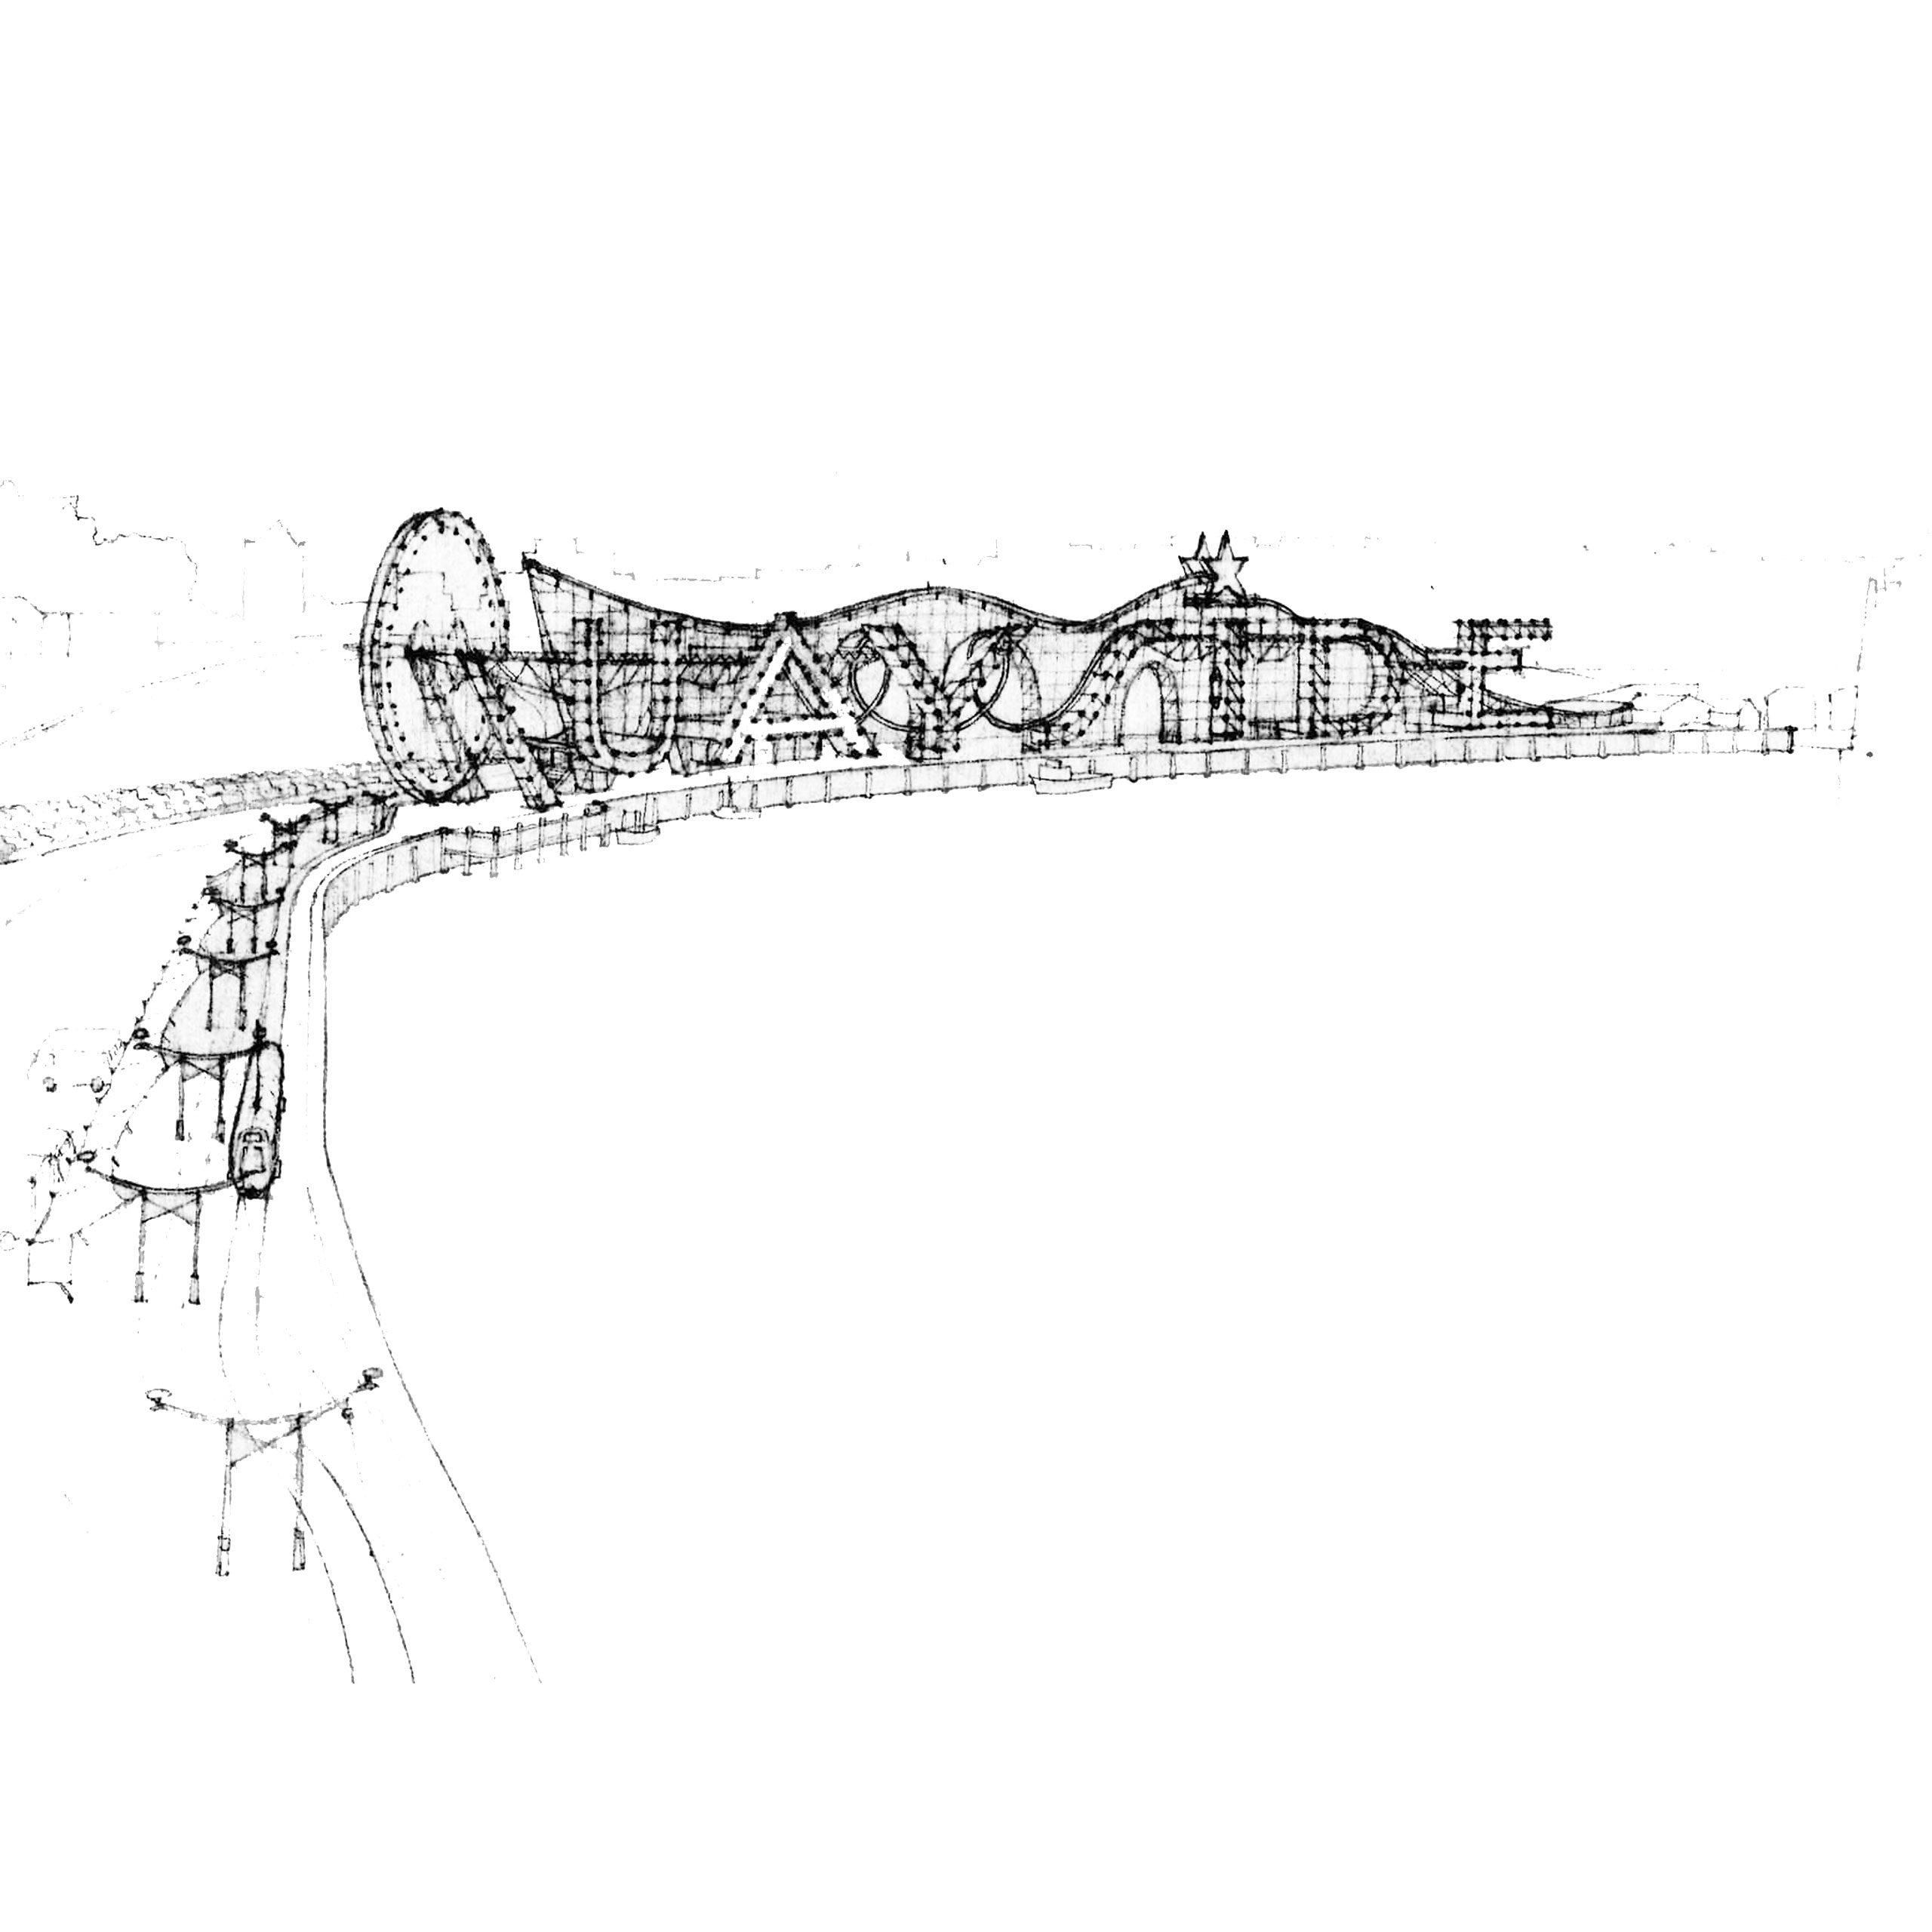 19-09-19-Fairground-fun-and-regeneration-in-Architects-Journal-Letters.jpg